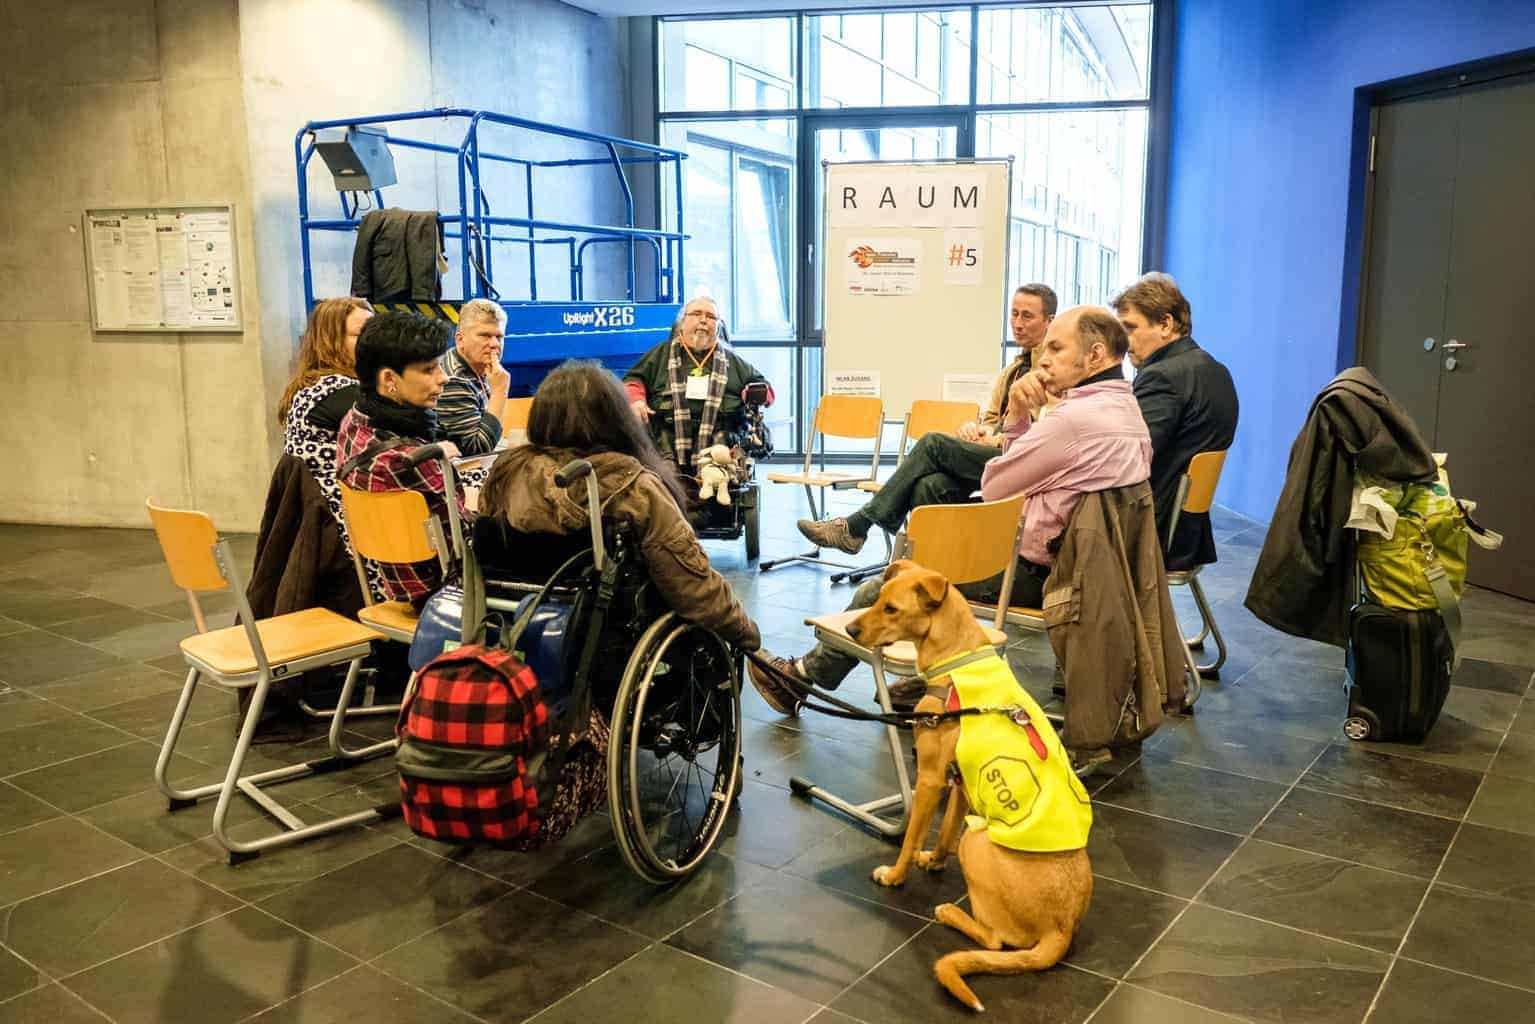 Photo of a working meeting :: A group of eight adults sits together in a circle in a room, seemingly engrossed in a work conversation. A wheelchair user is accompanied by an assistance dog sitting in the foreground of the image.